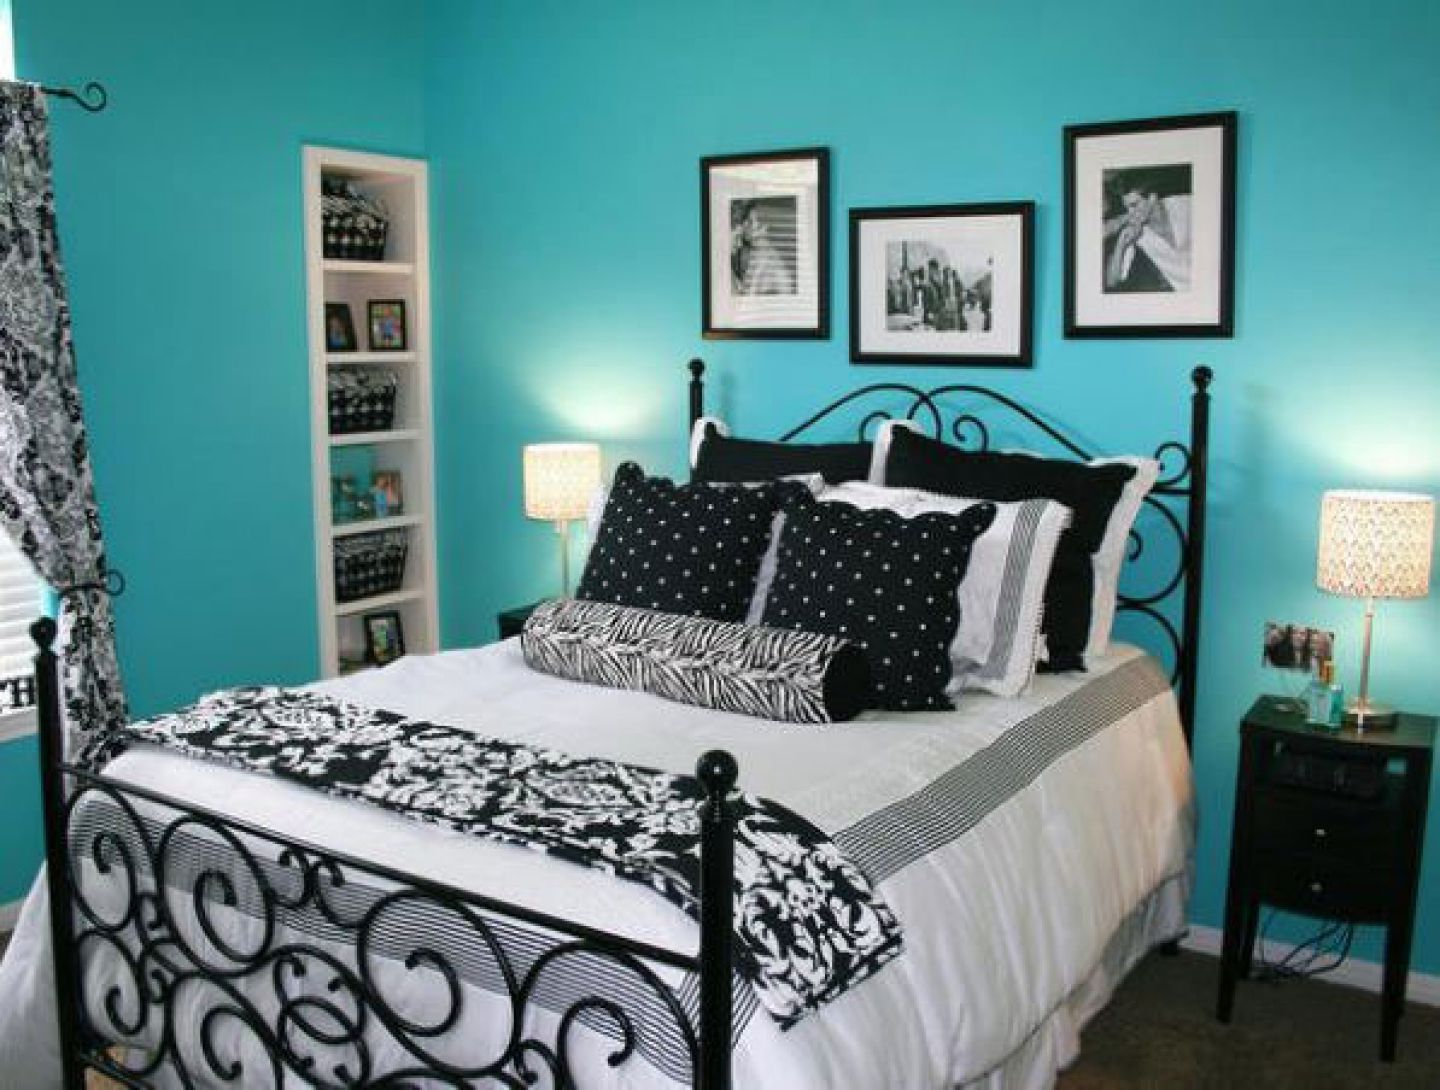 Black and white bedroom ideas for teenage girls - Wonderful Blue Themes Teenage Girl Room Ideas With Elegant Black Metal Bed Frame That Have White Bedding Complete With The Pillows And Beautiful Three